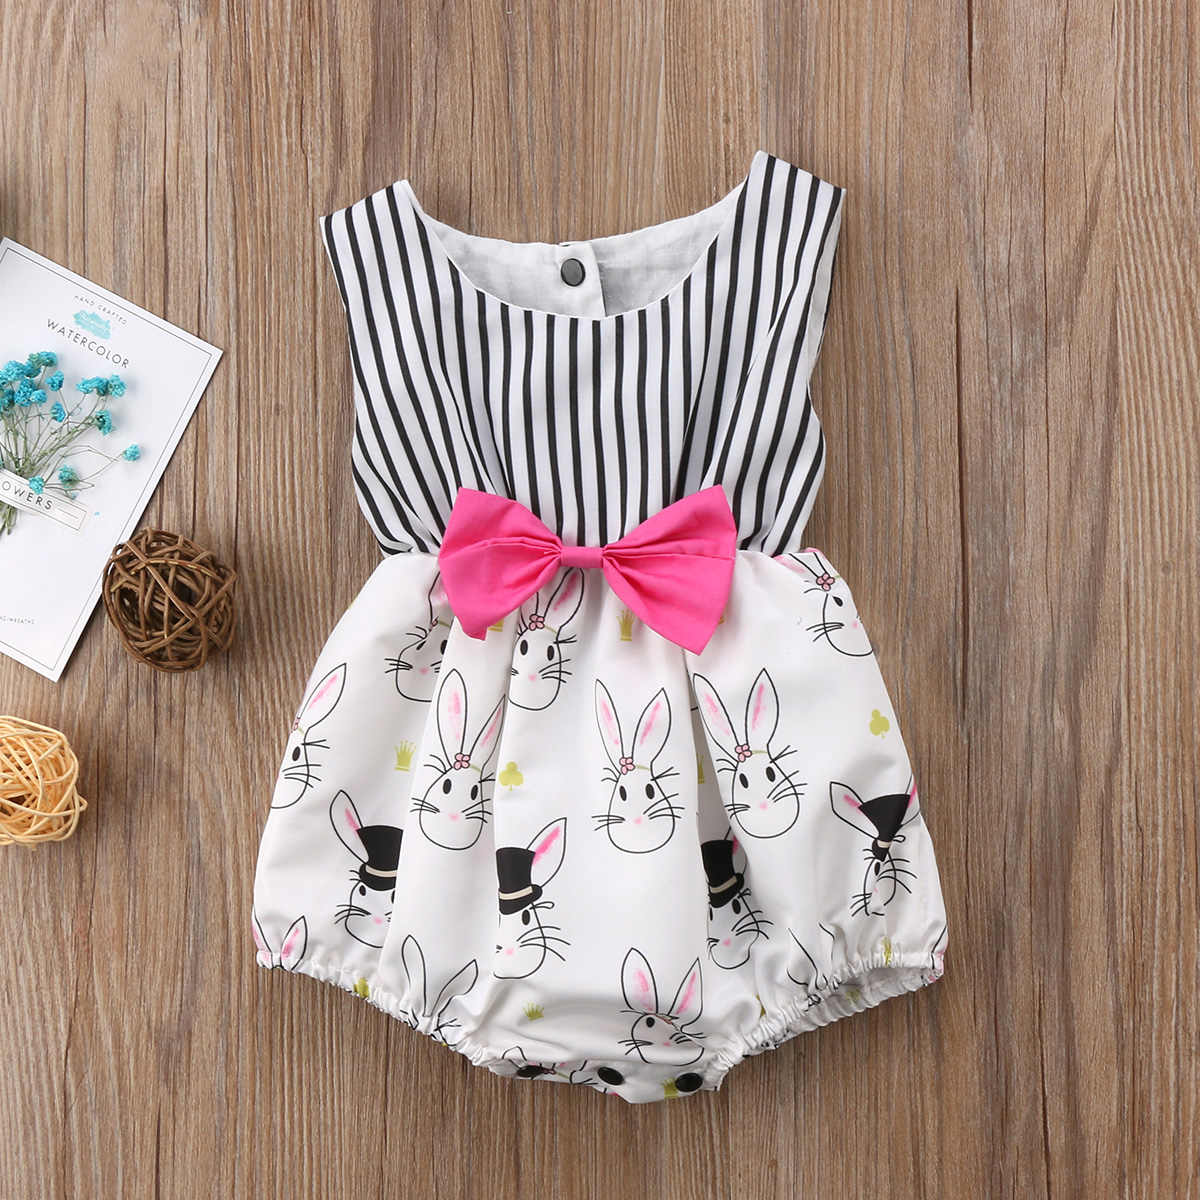 Pudcoco 2019 New Brand Newborn Baby Girls Bunny Bowknot Cartoon  Bodysuit  Easter Outfit